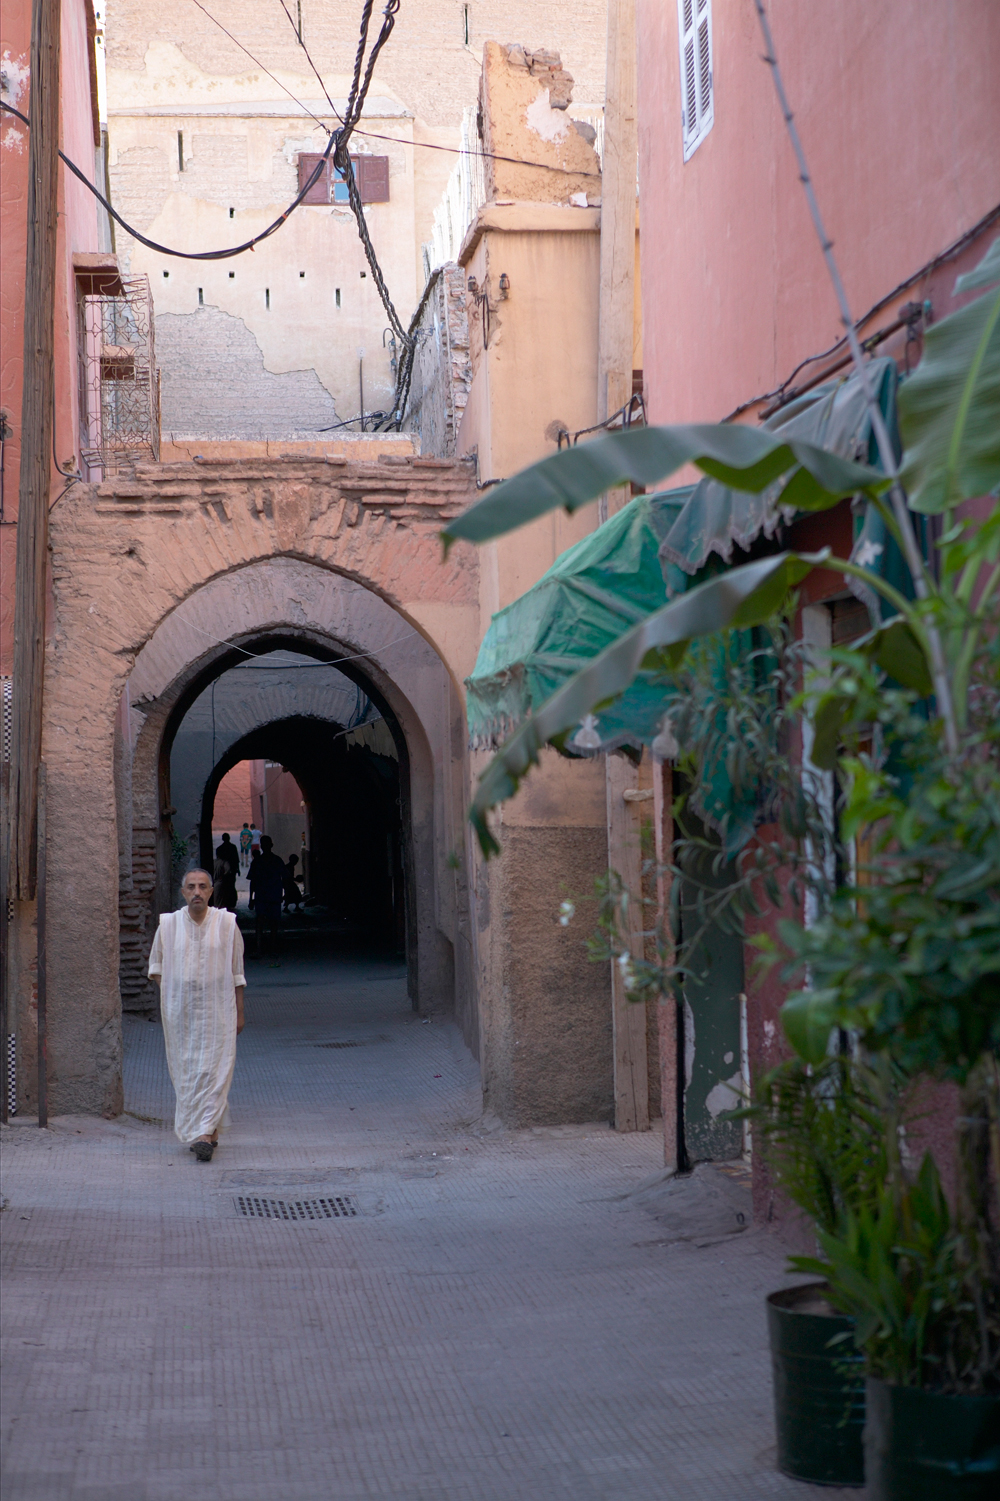 Gasse in Marrakech